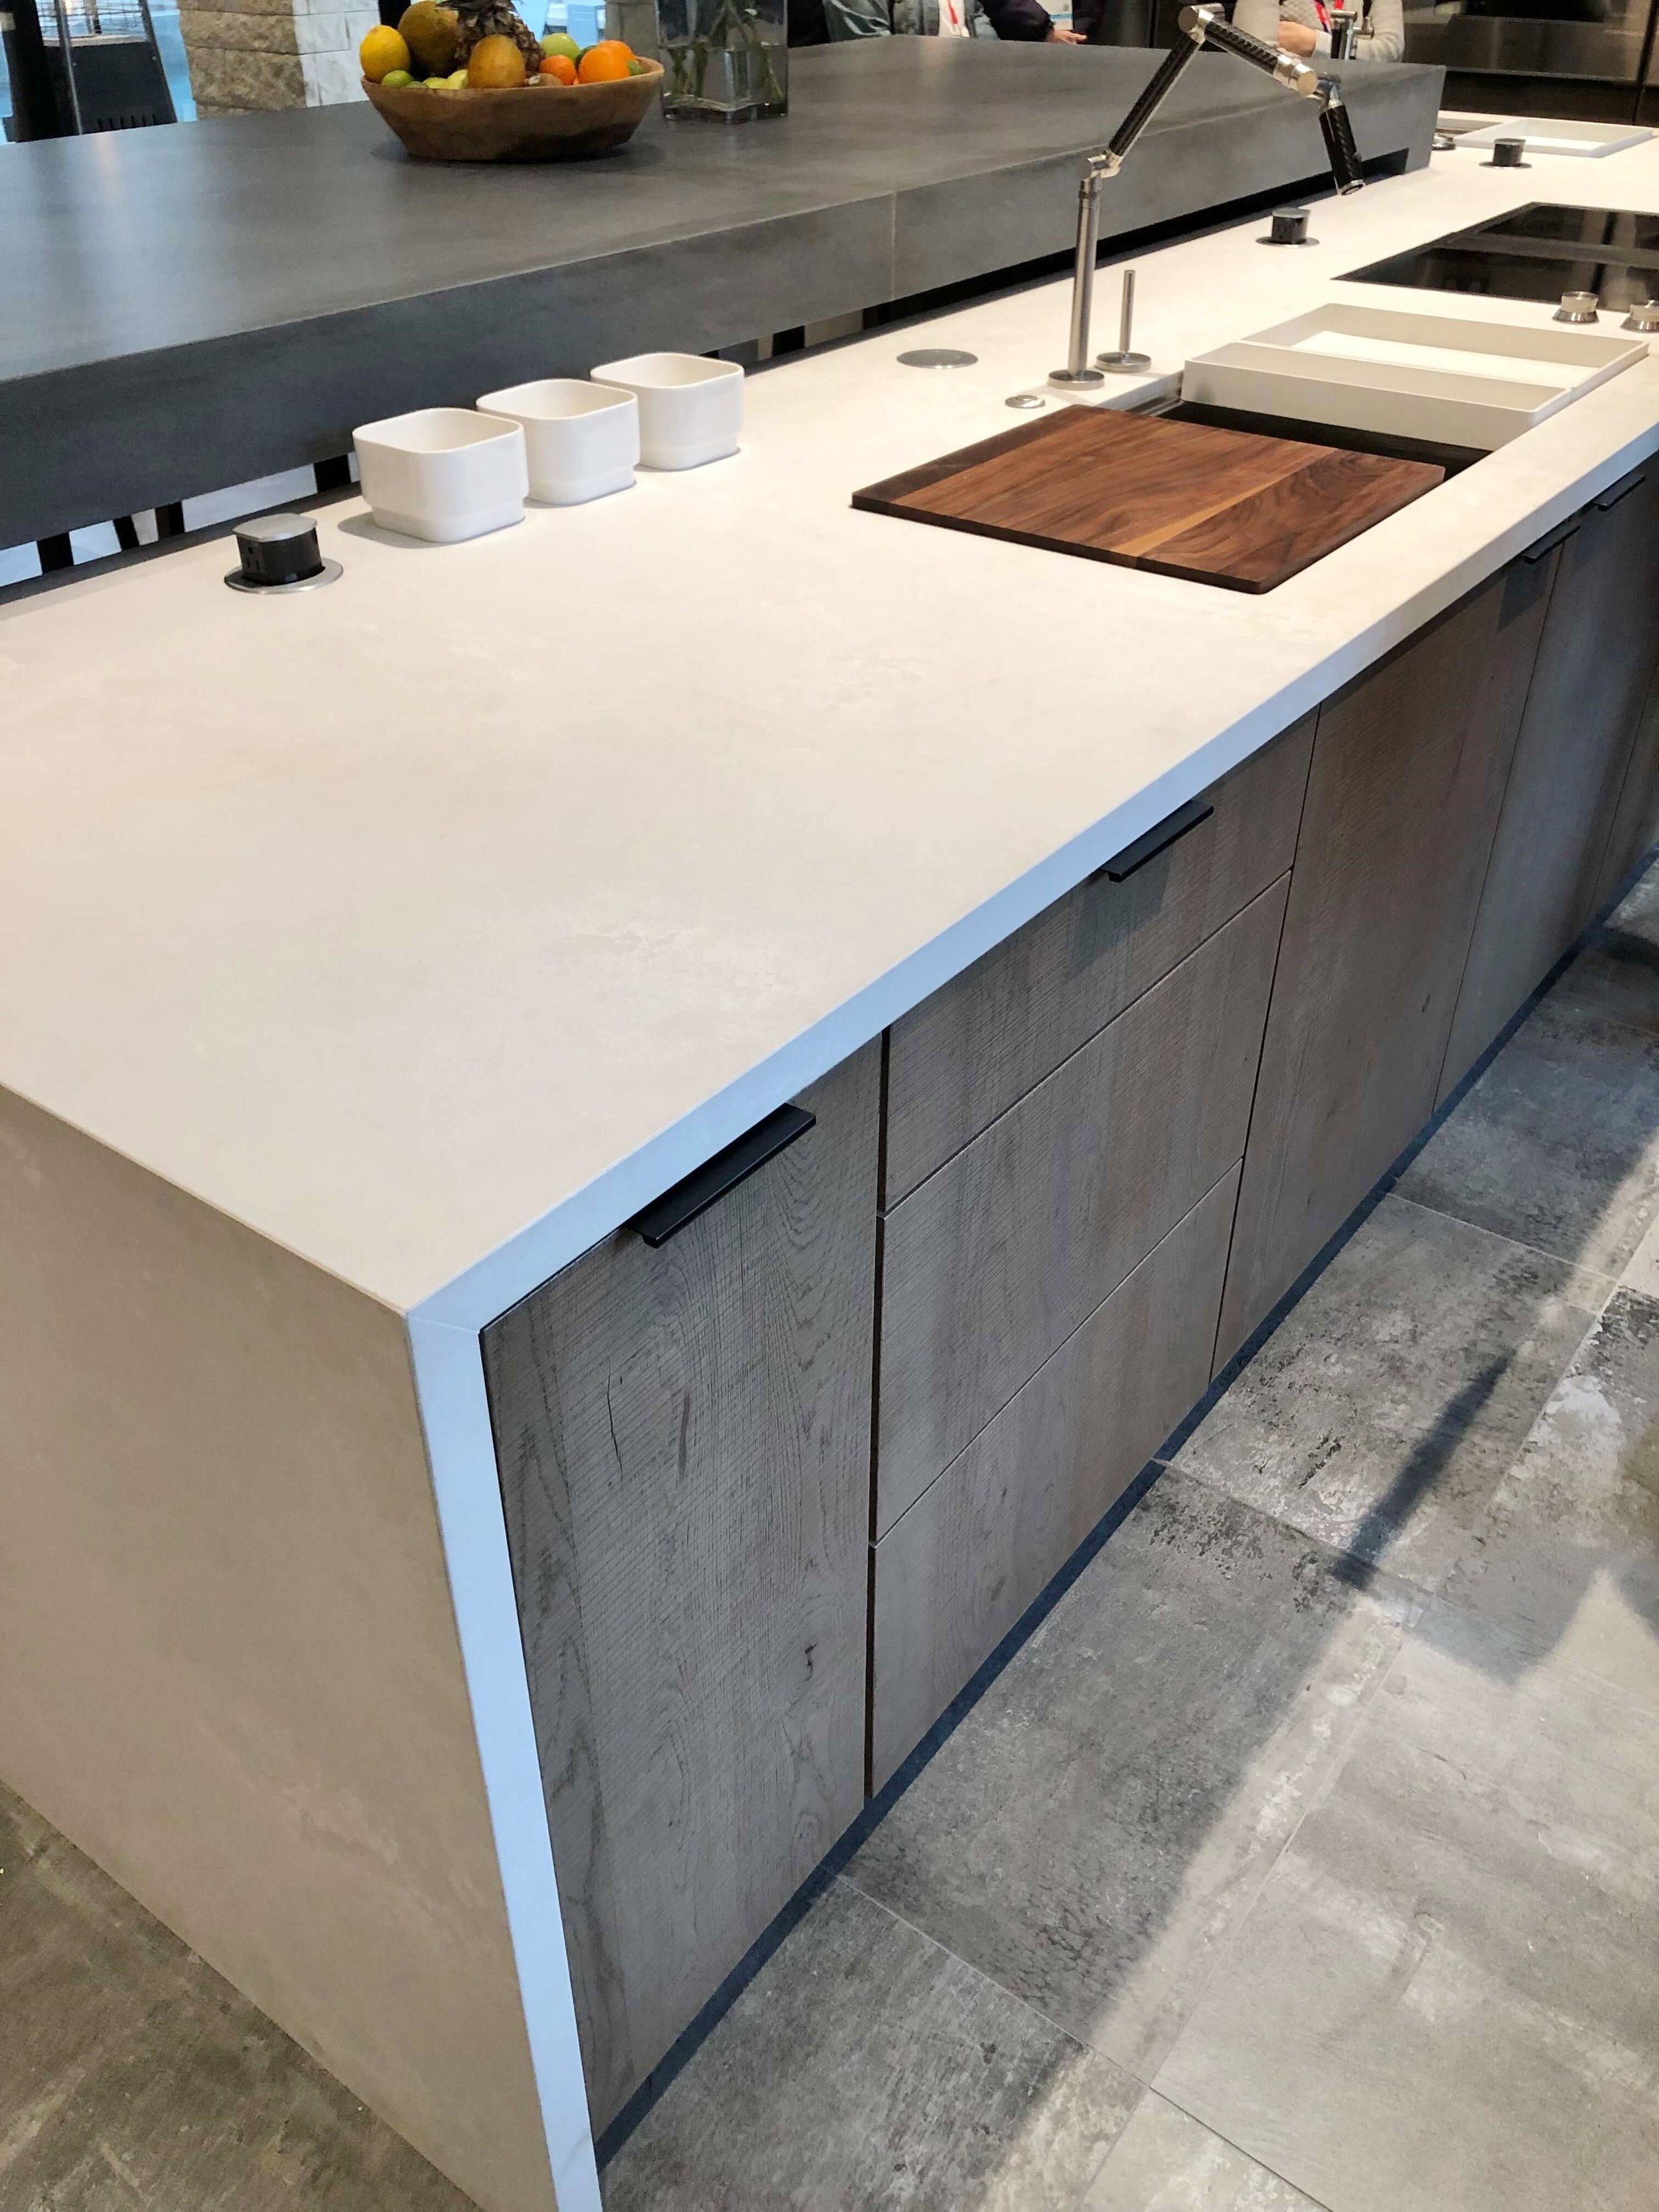 Why Thick Countertops Make A Strong